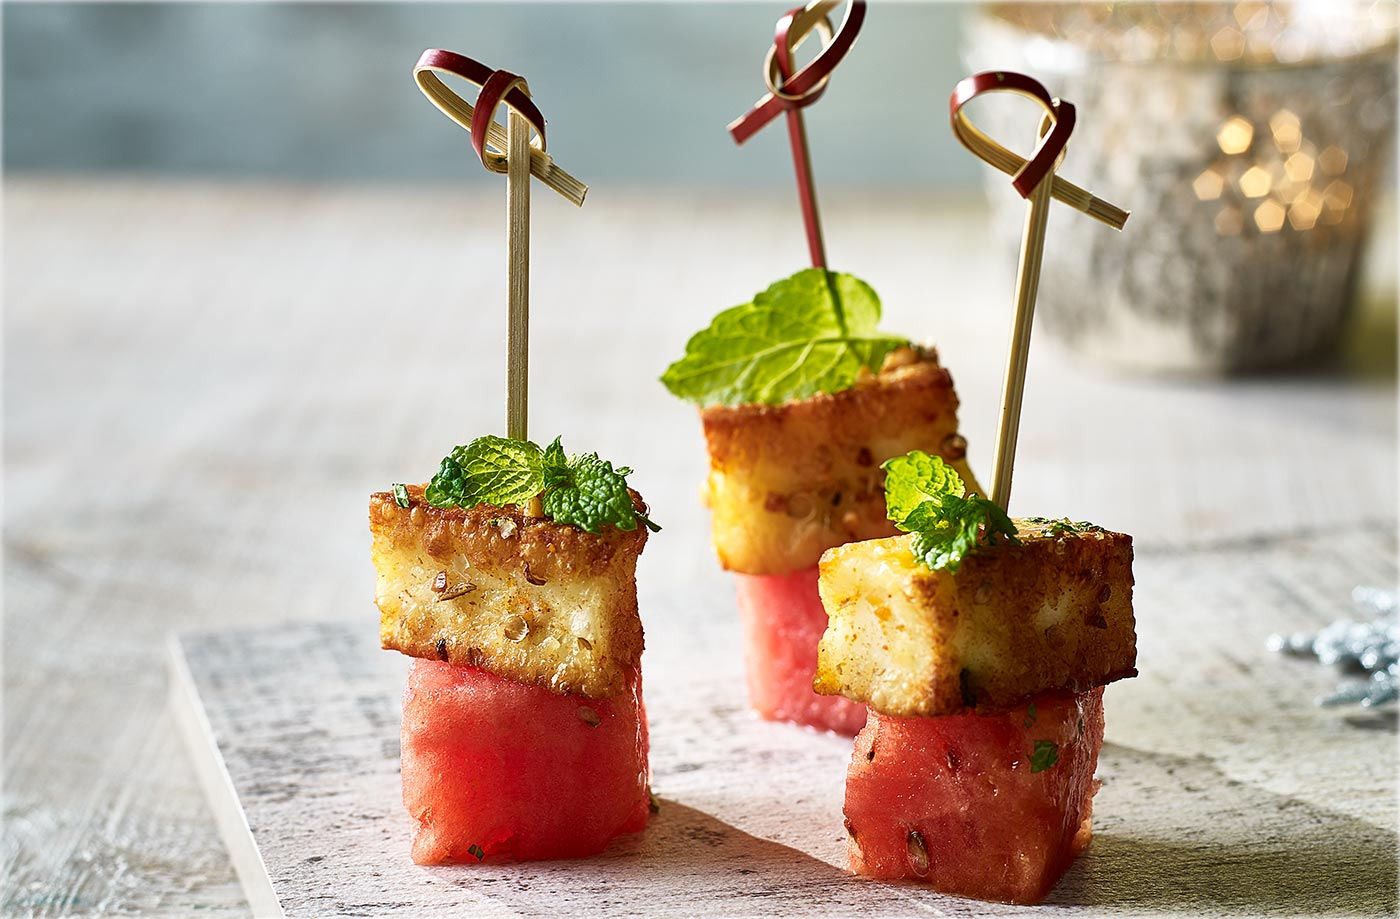 Dukkah-crusted halloumi and watermelon skewers recipe